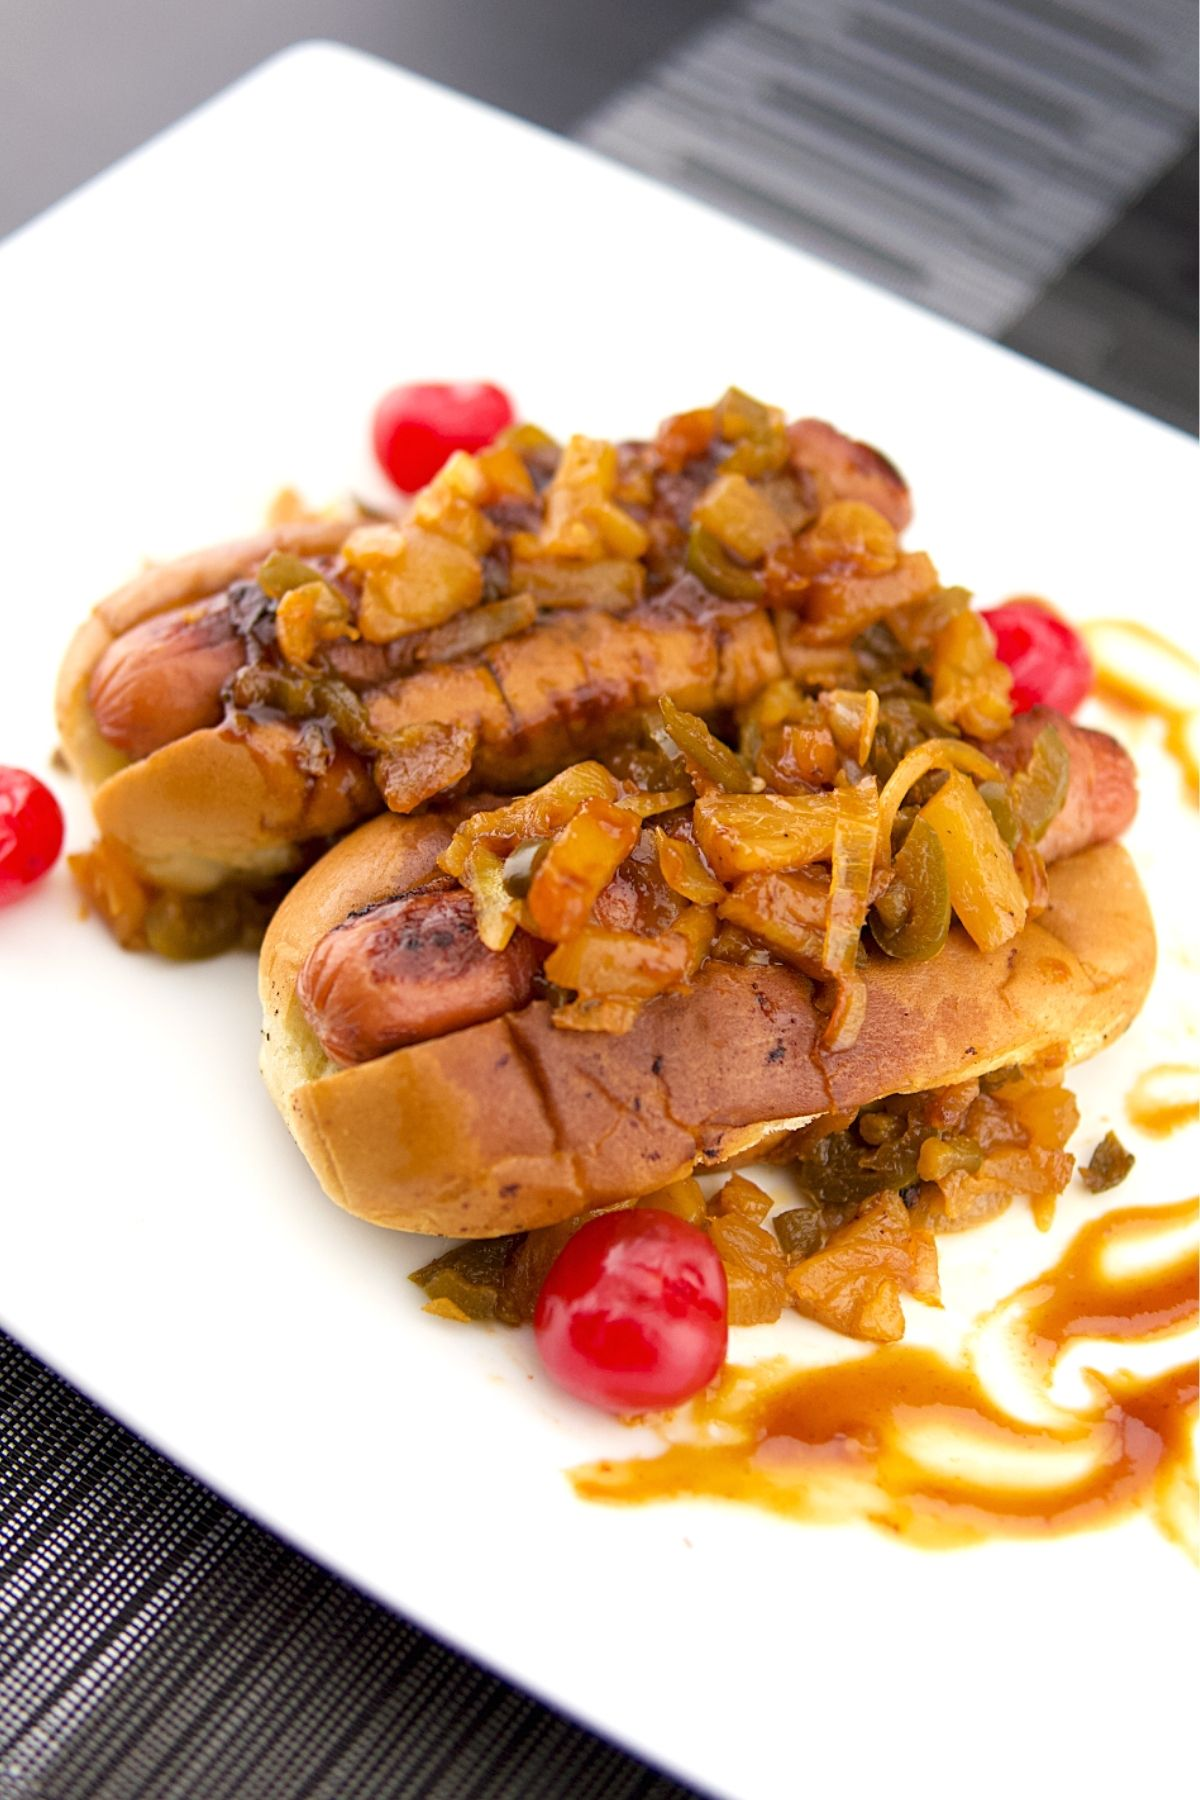 Sweet Pineapple Jalapeno Bacon Wrapped Hot Dogs Recipe 1 of 5